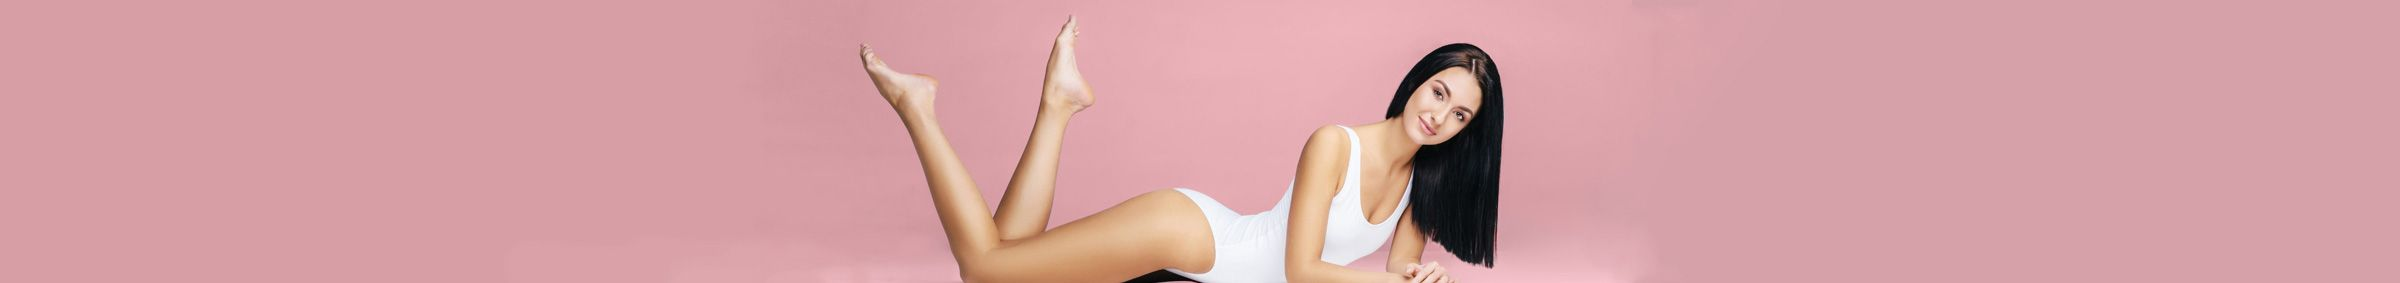 Laser Hair Removal Banner Image